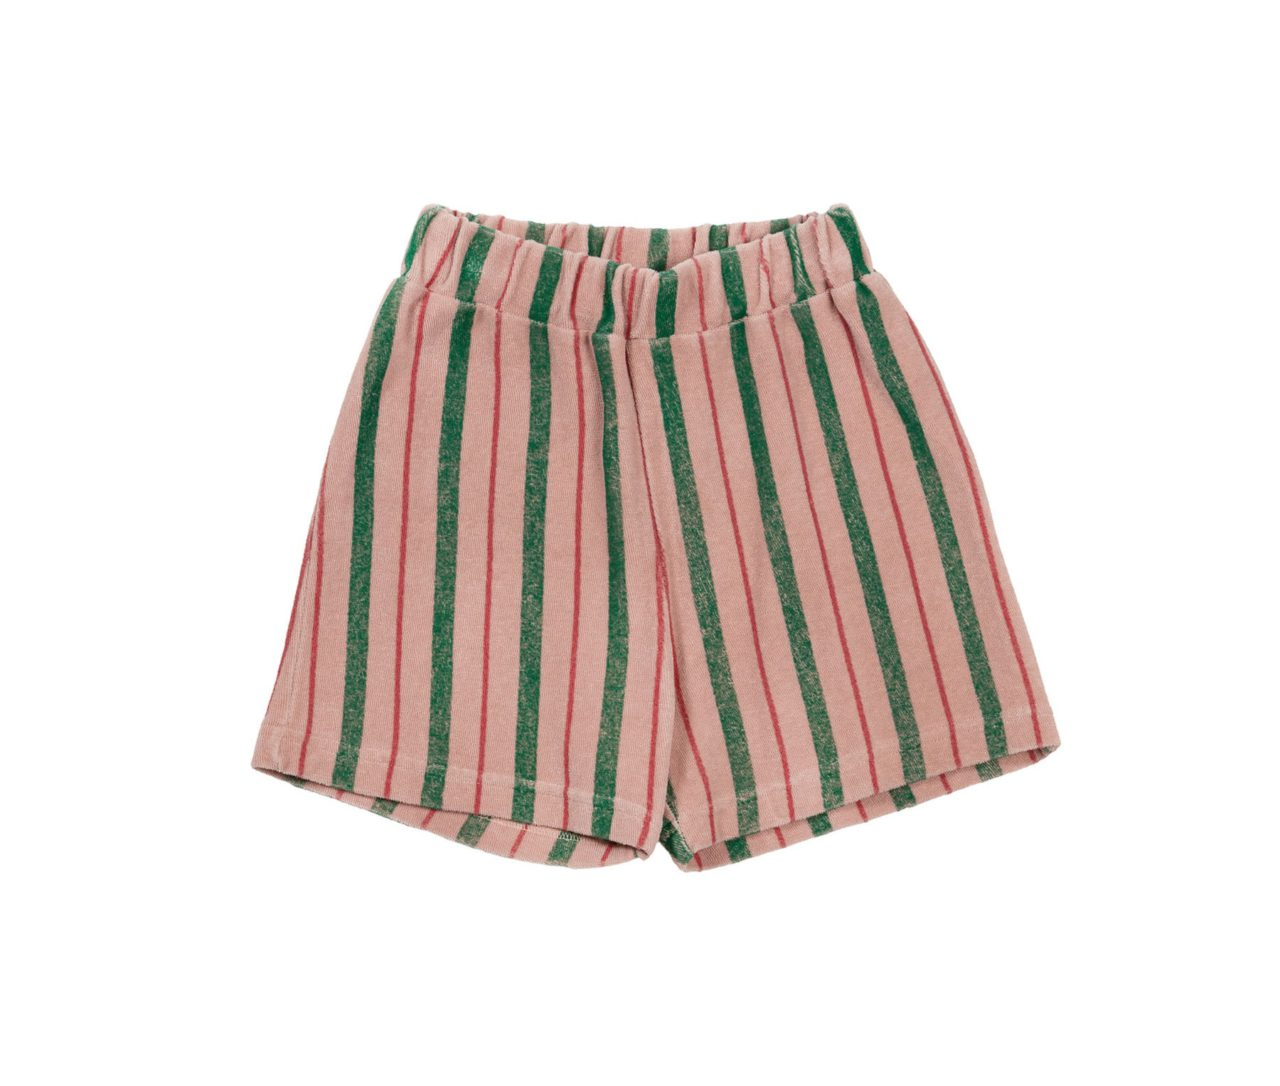 thecampamento_striped_shorts_01b